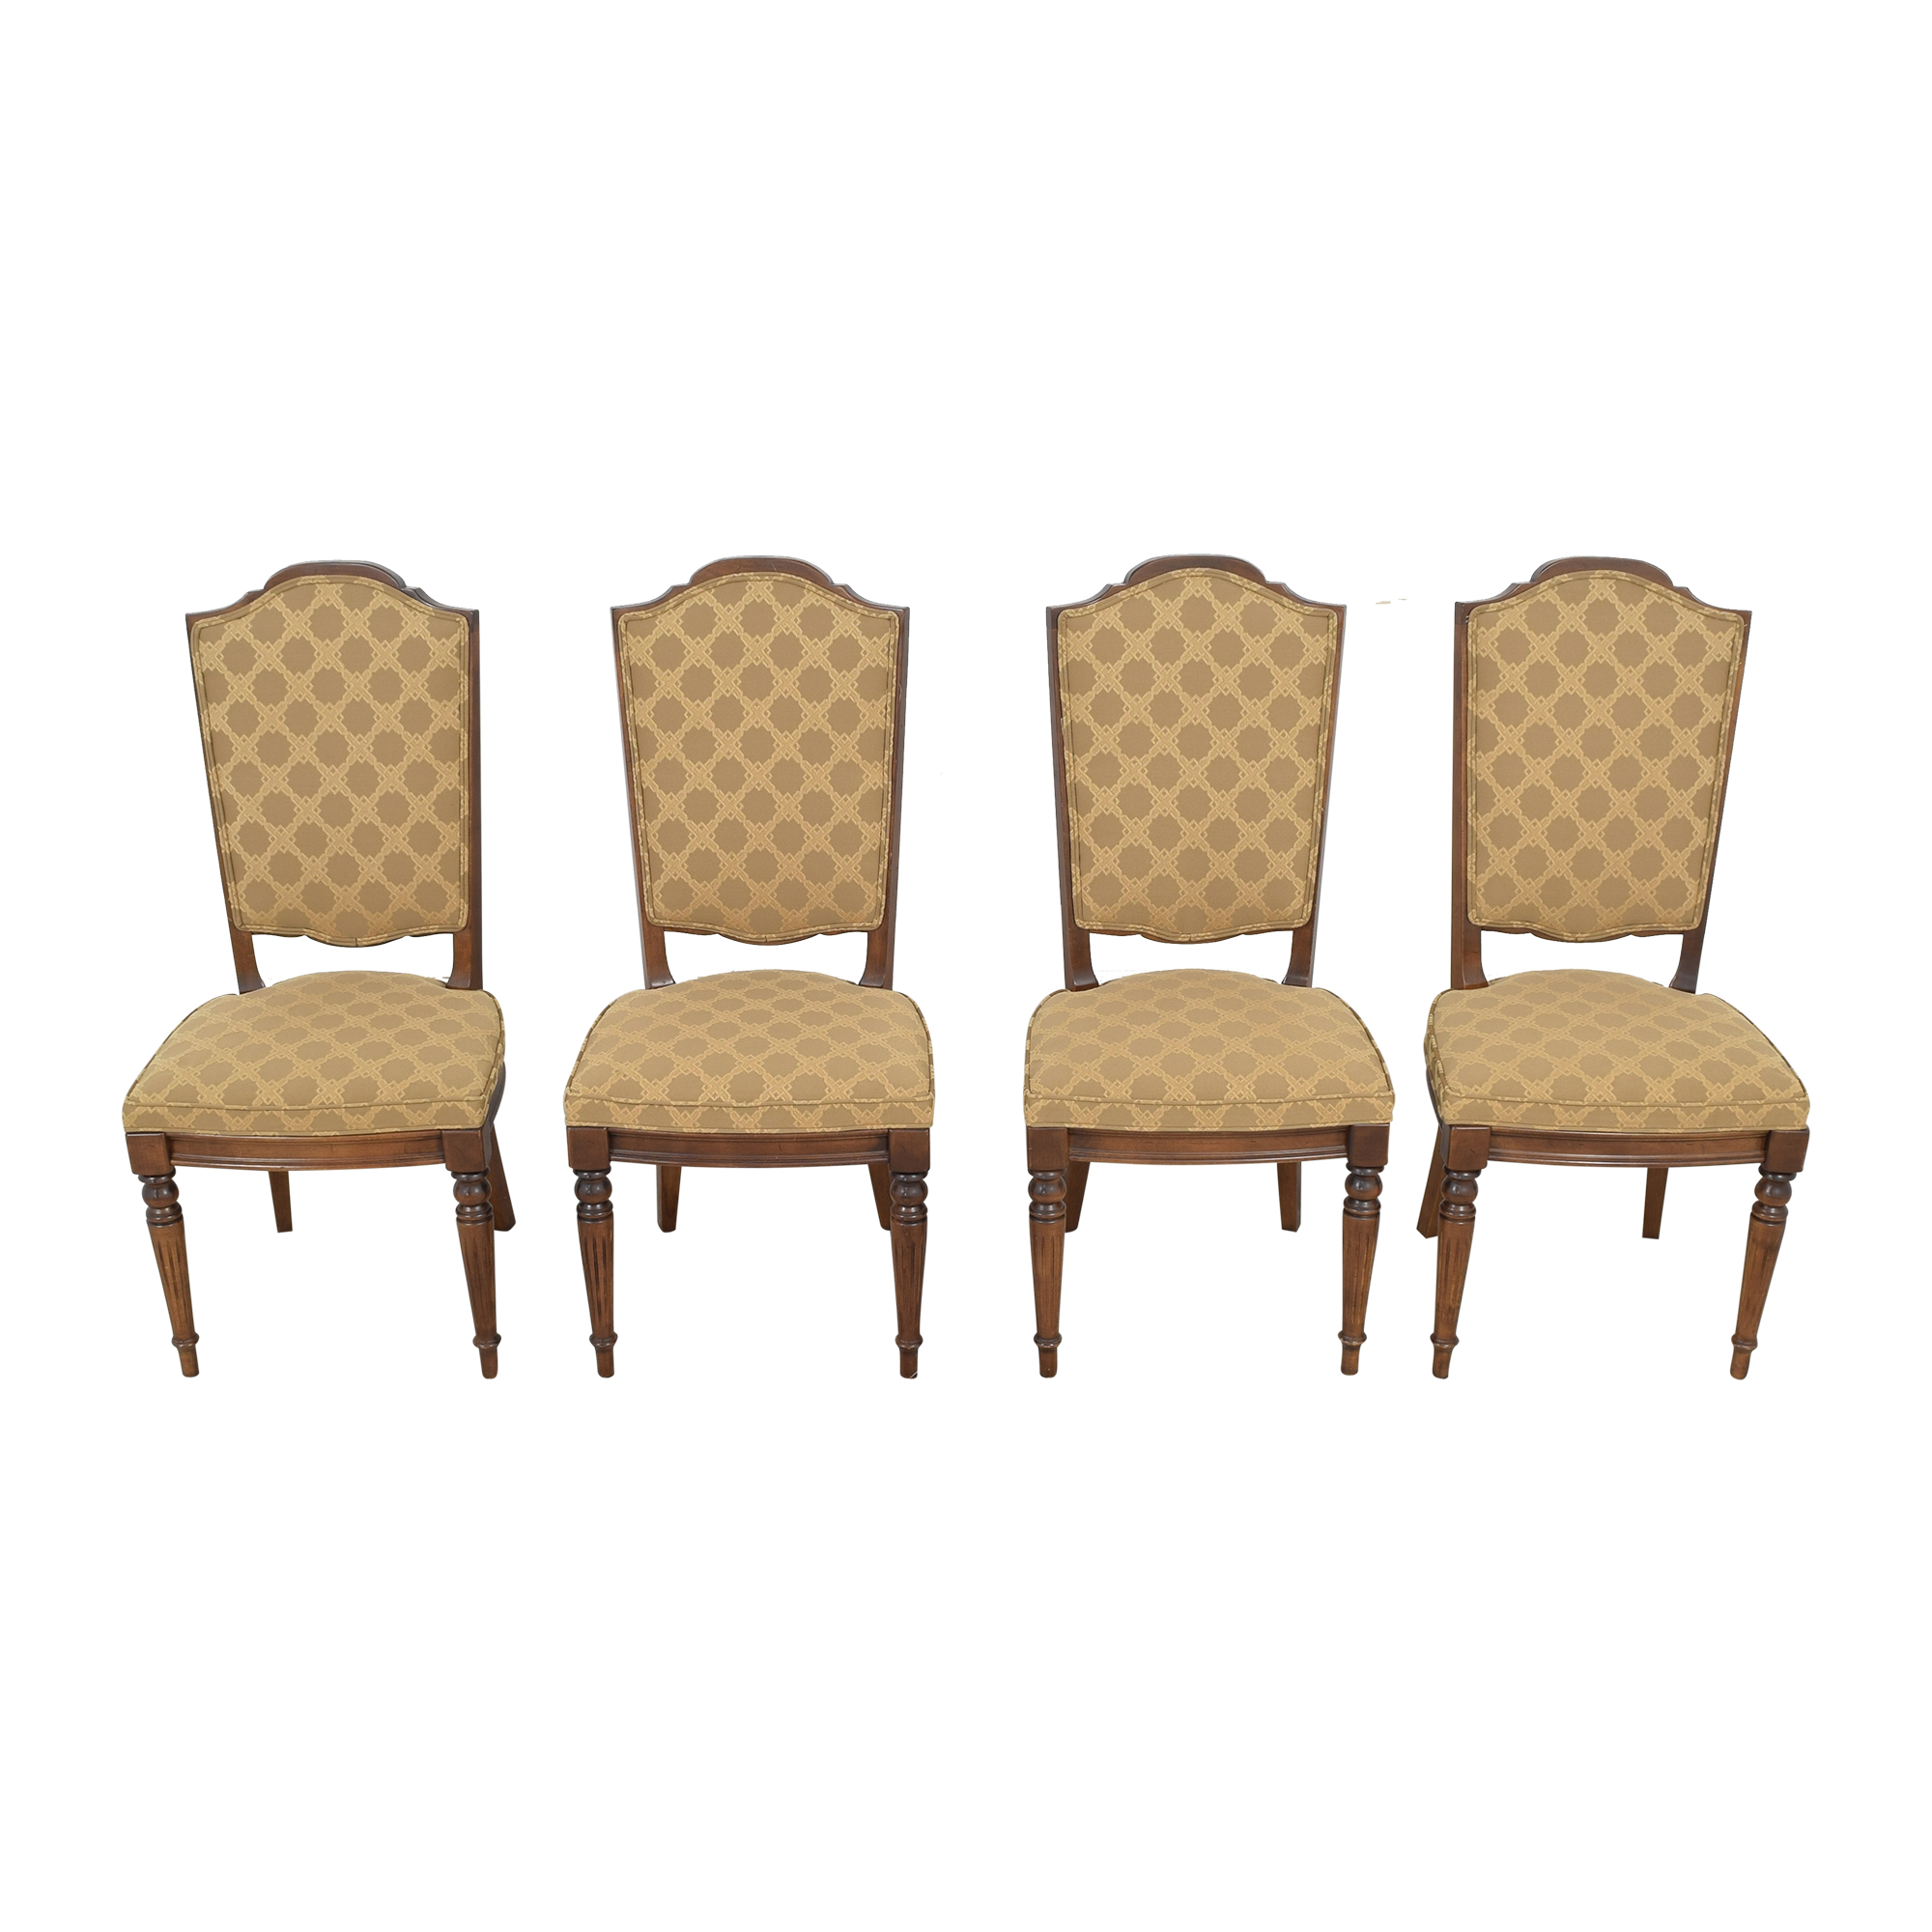 Ethan Allen Ethan Allen Side Dining Chairs on sale